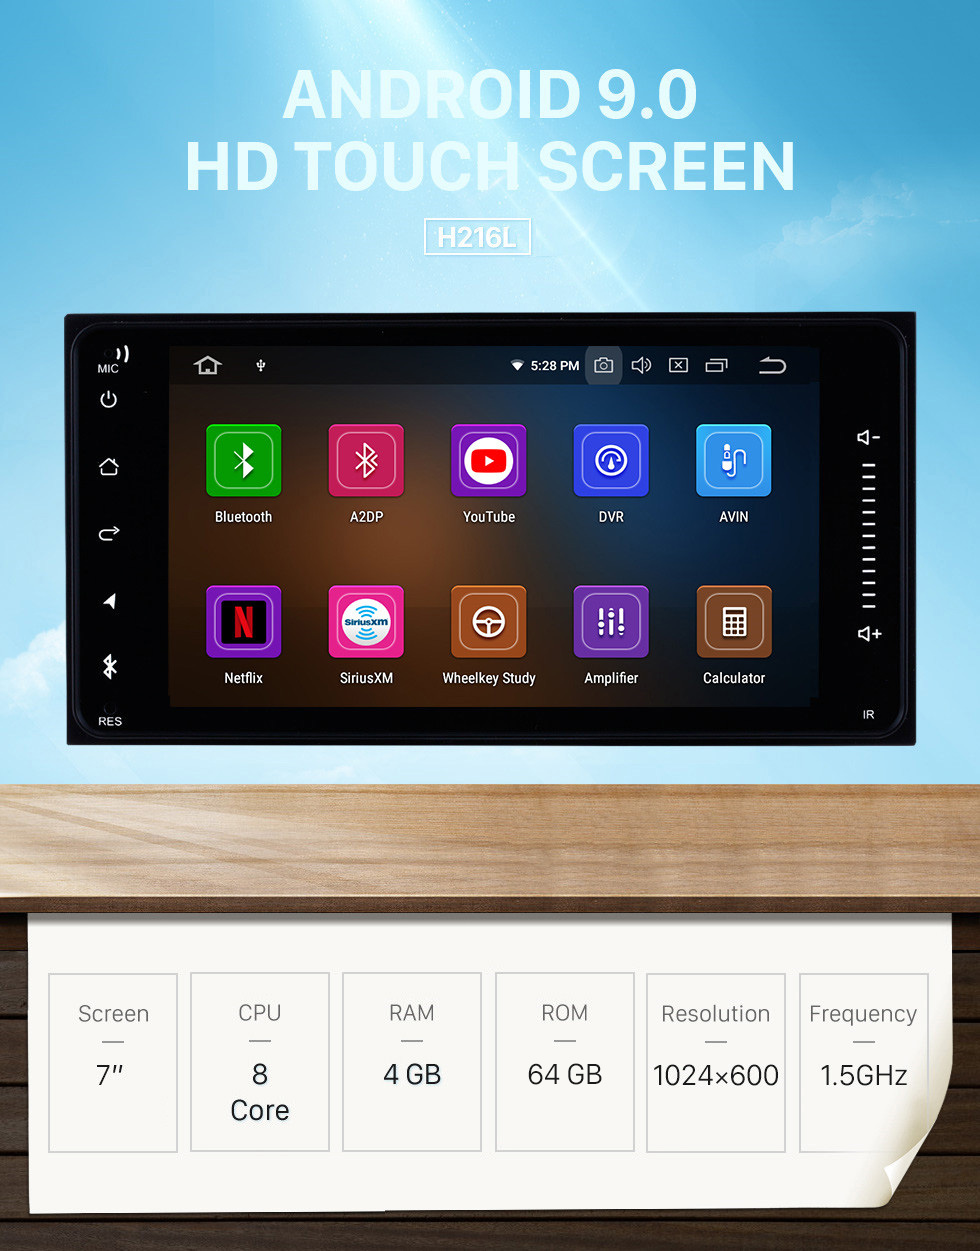 Seicane Toyota Universal Android 9.0 7 inch HD Touch Screen radio Bluetooth GPS Navigation system USB WIFI support TPMS DVR OBD II WiFi Rear camera Steering Wheel Control HD 1080P Video AUX